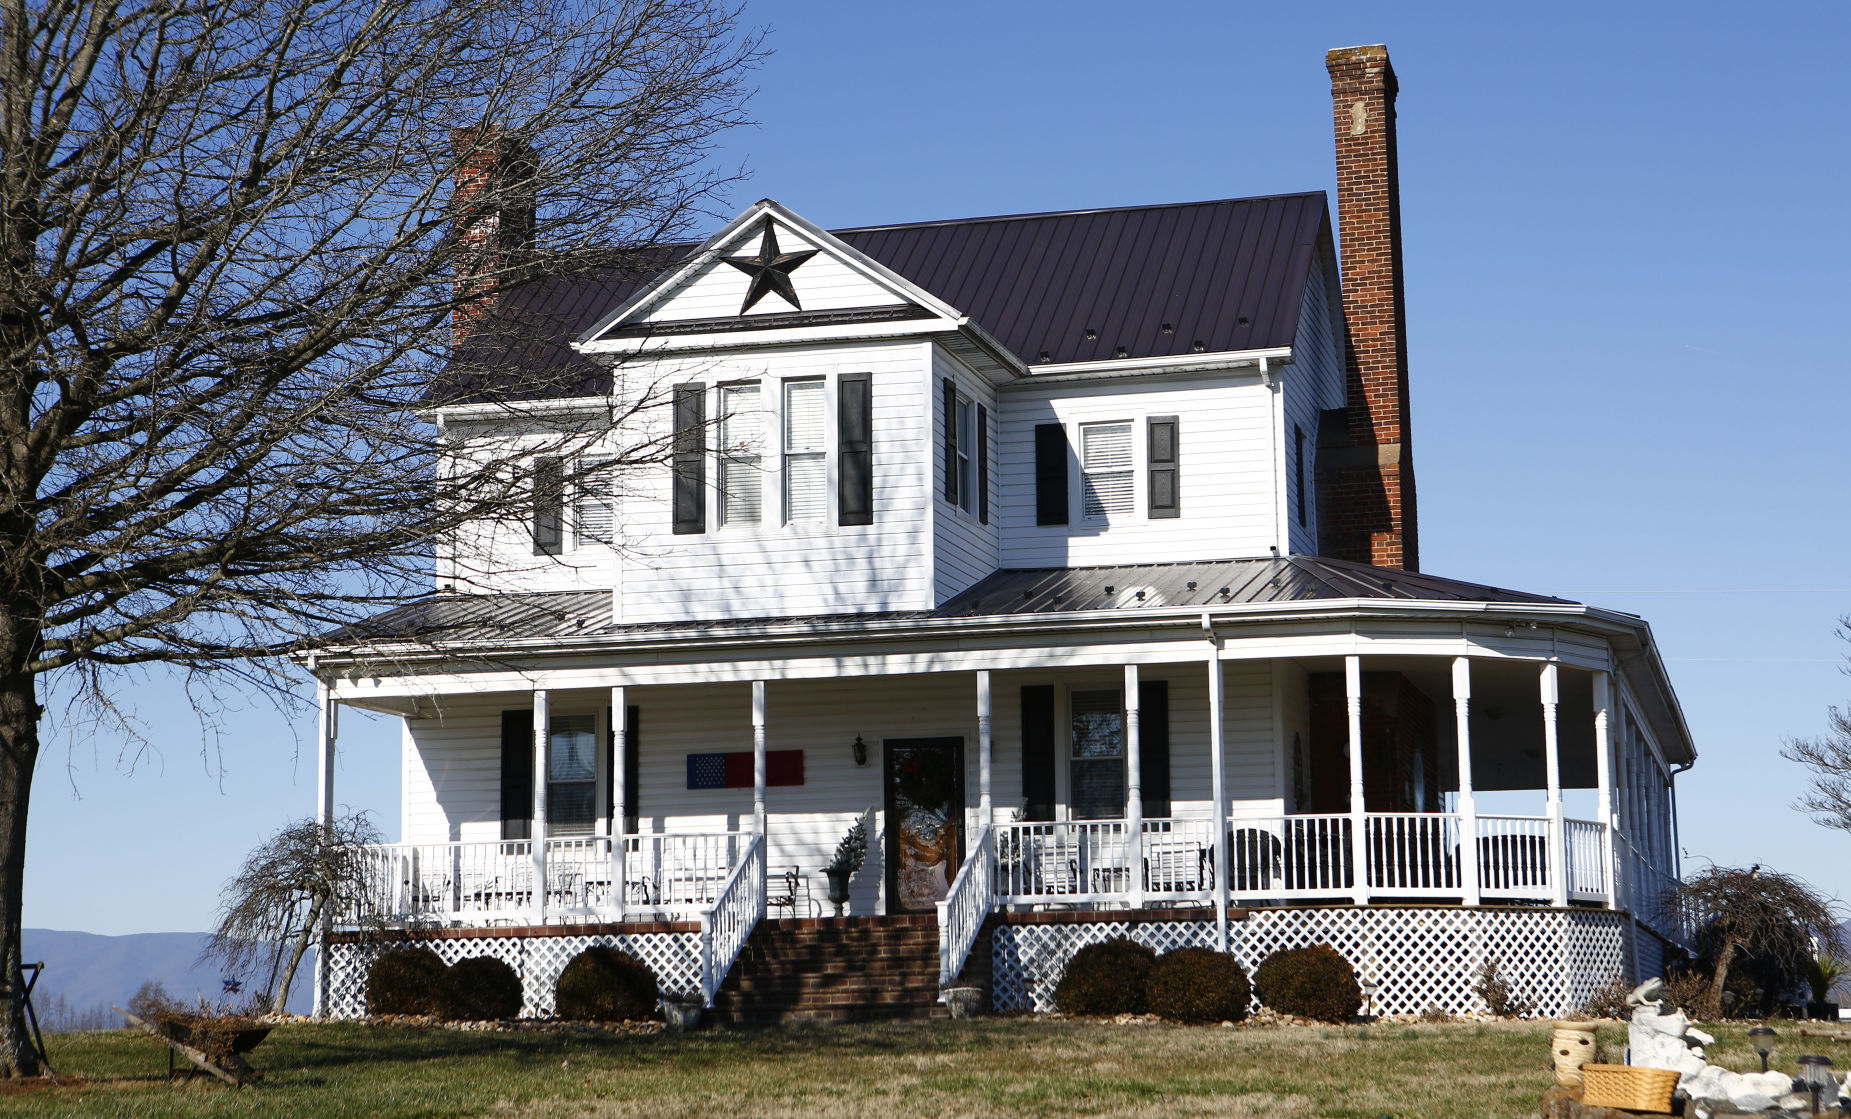 Old Bedford Farmhouse Has Weathered Storms For More Than 200 Years Local News Newsadvance Com